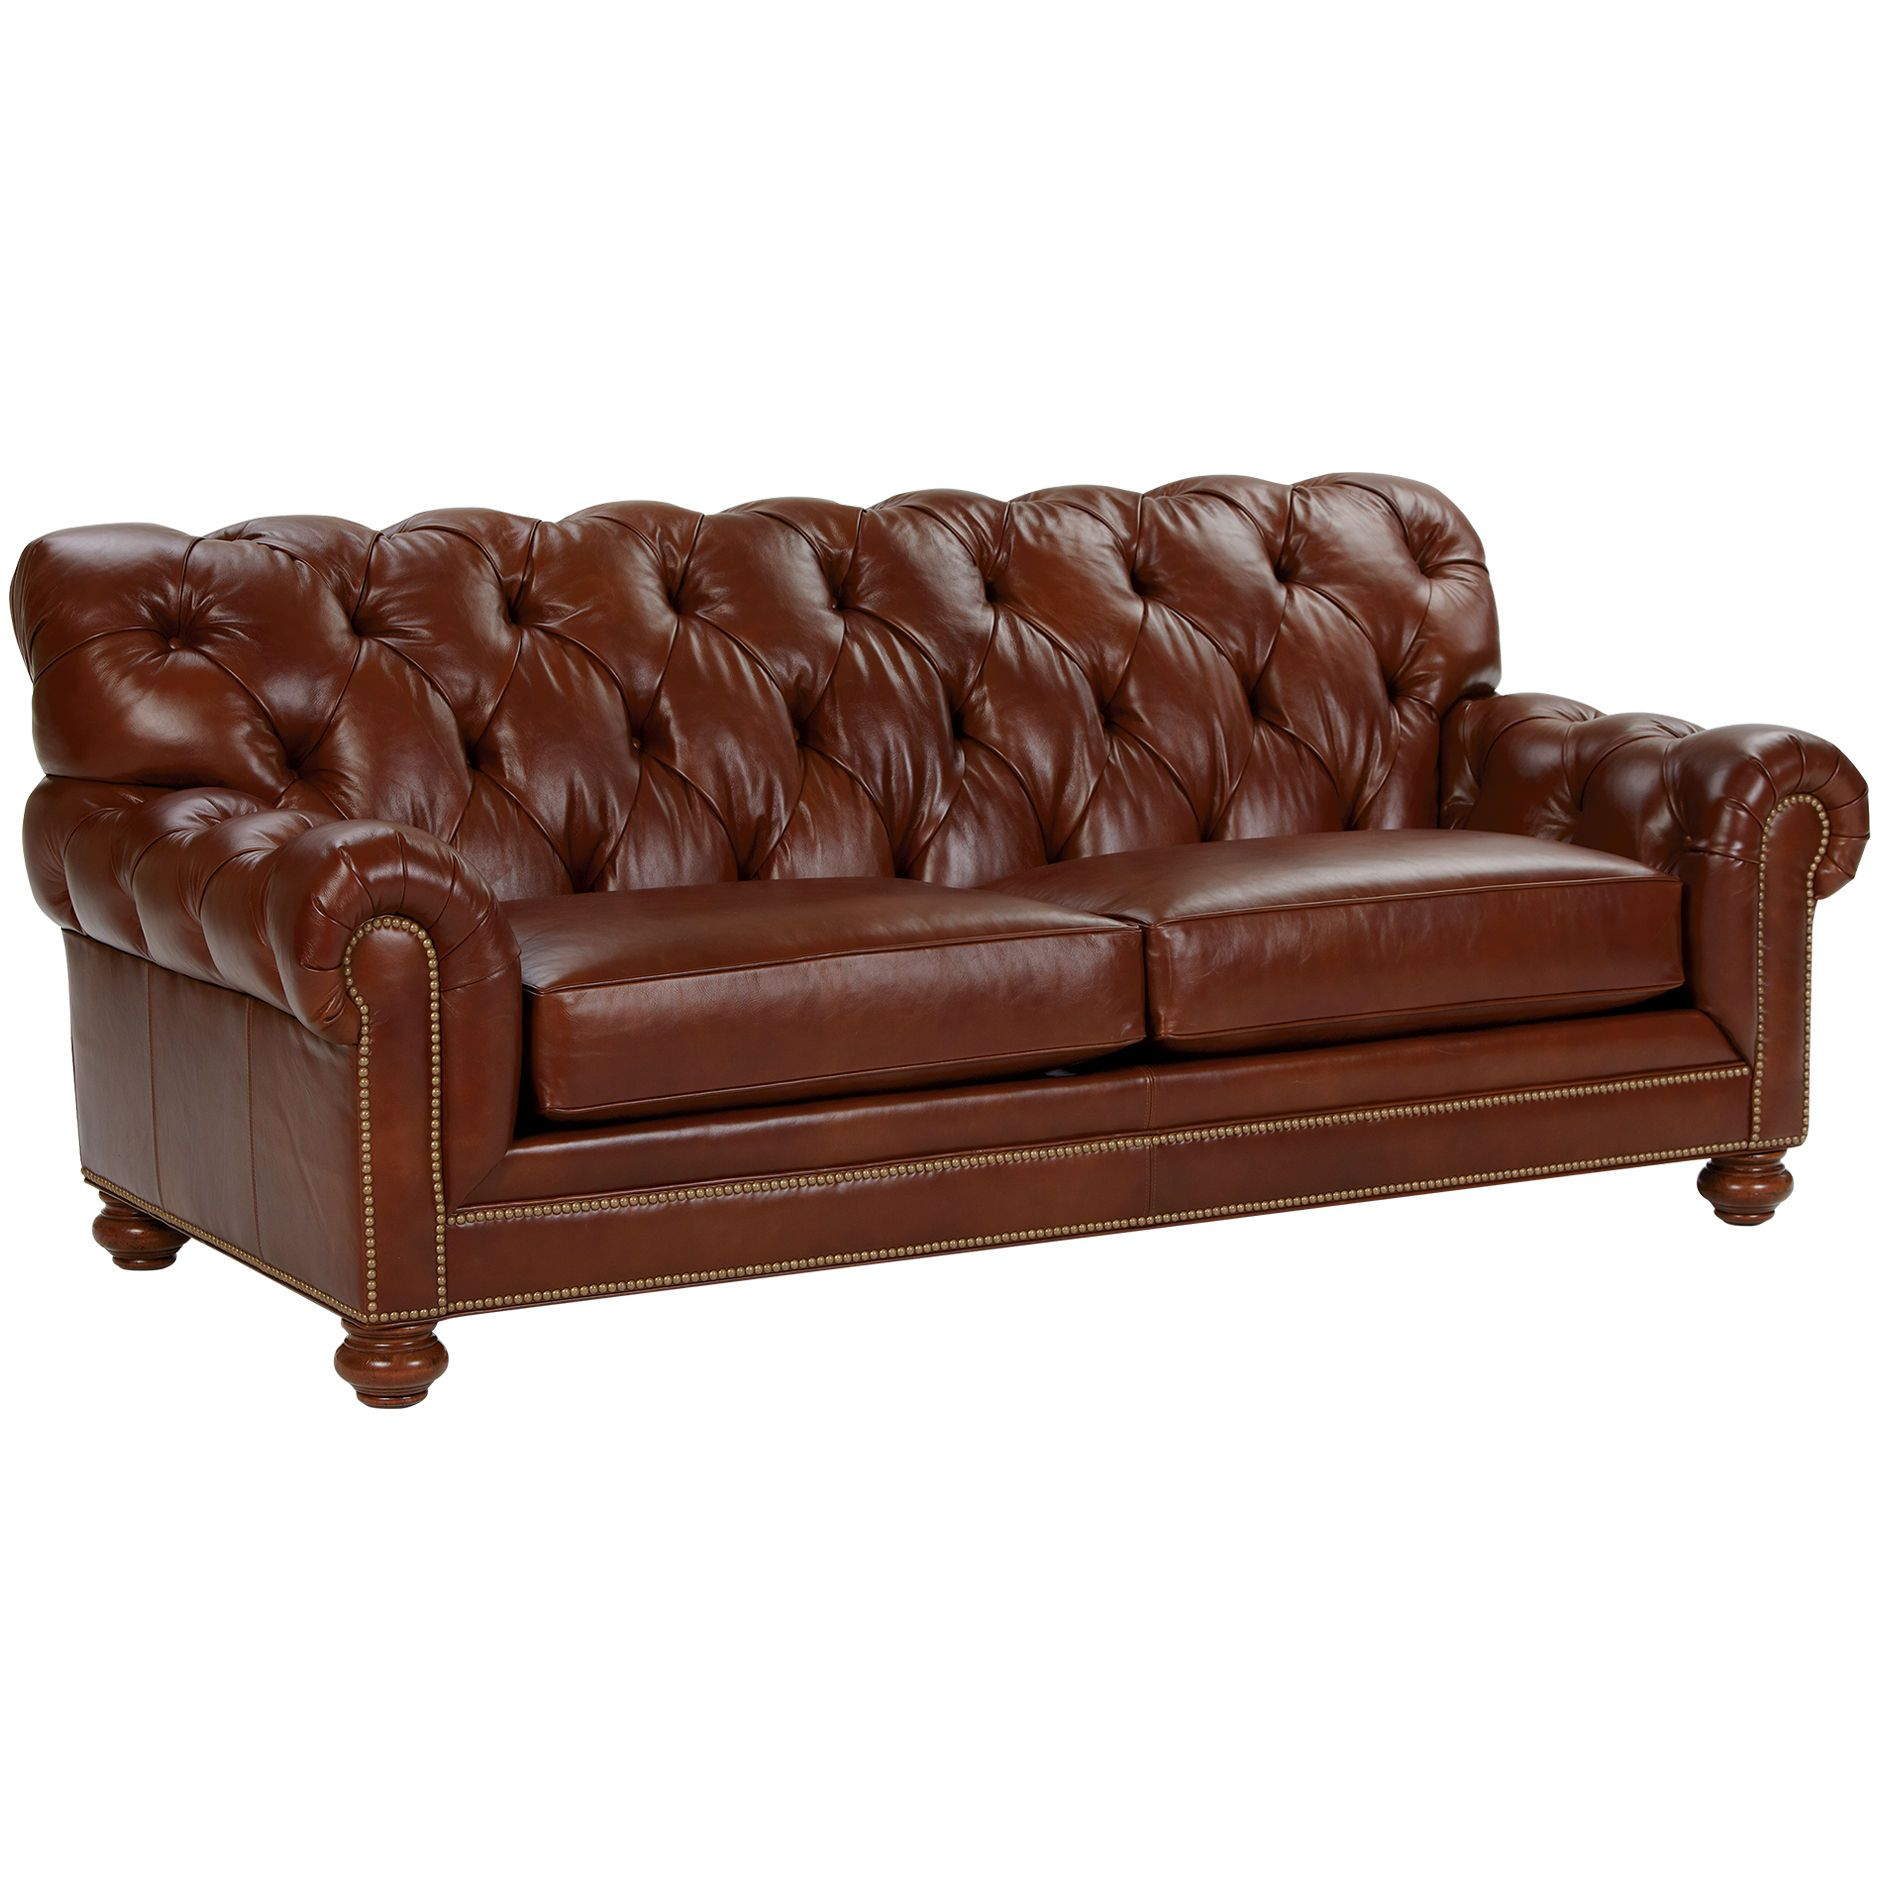 Chadwick Sofa Leather With Chaise Lounge Old English Saddle Ethan Allen Us